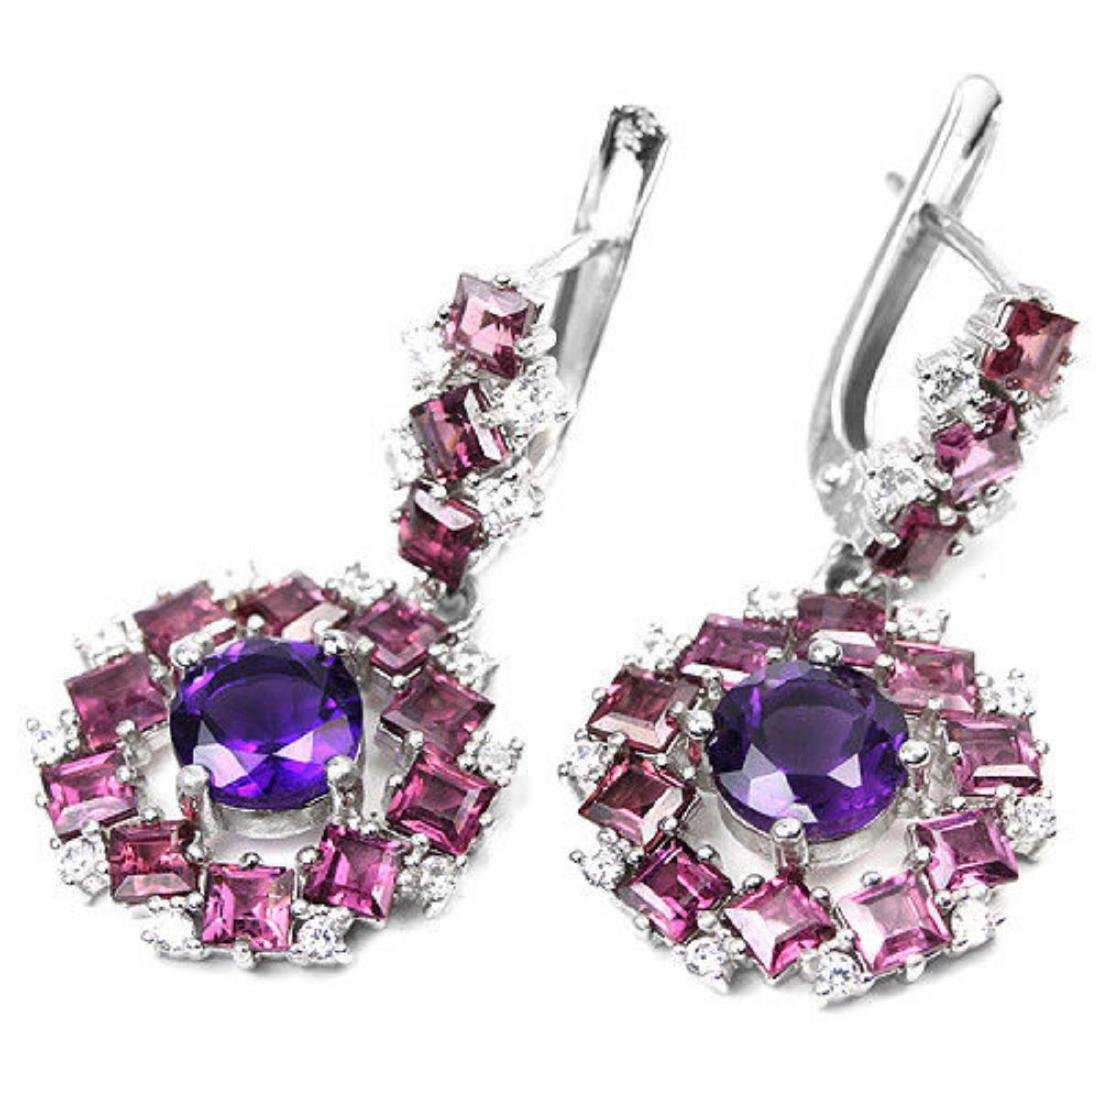 NATURAL AMETHYST, RHODOLITE GARNET Earrings - 2